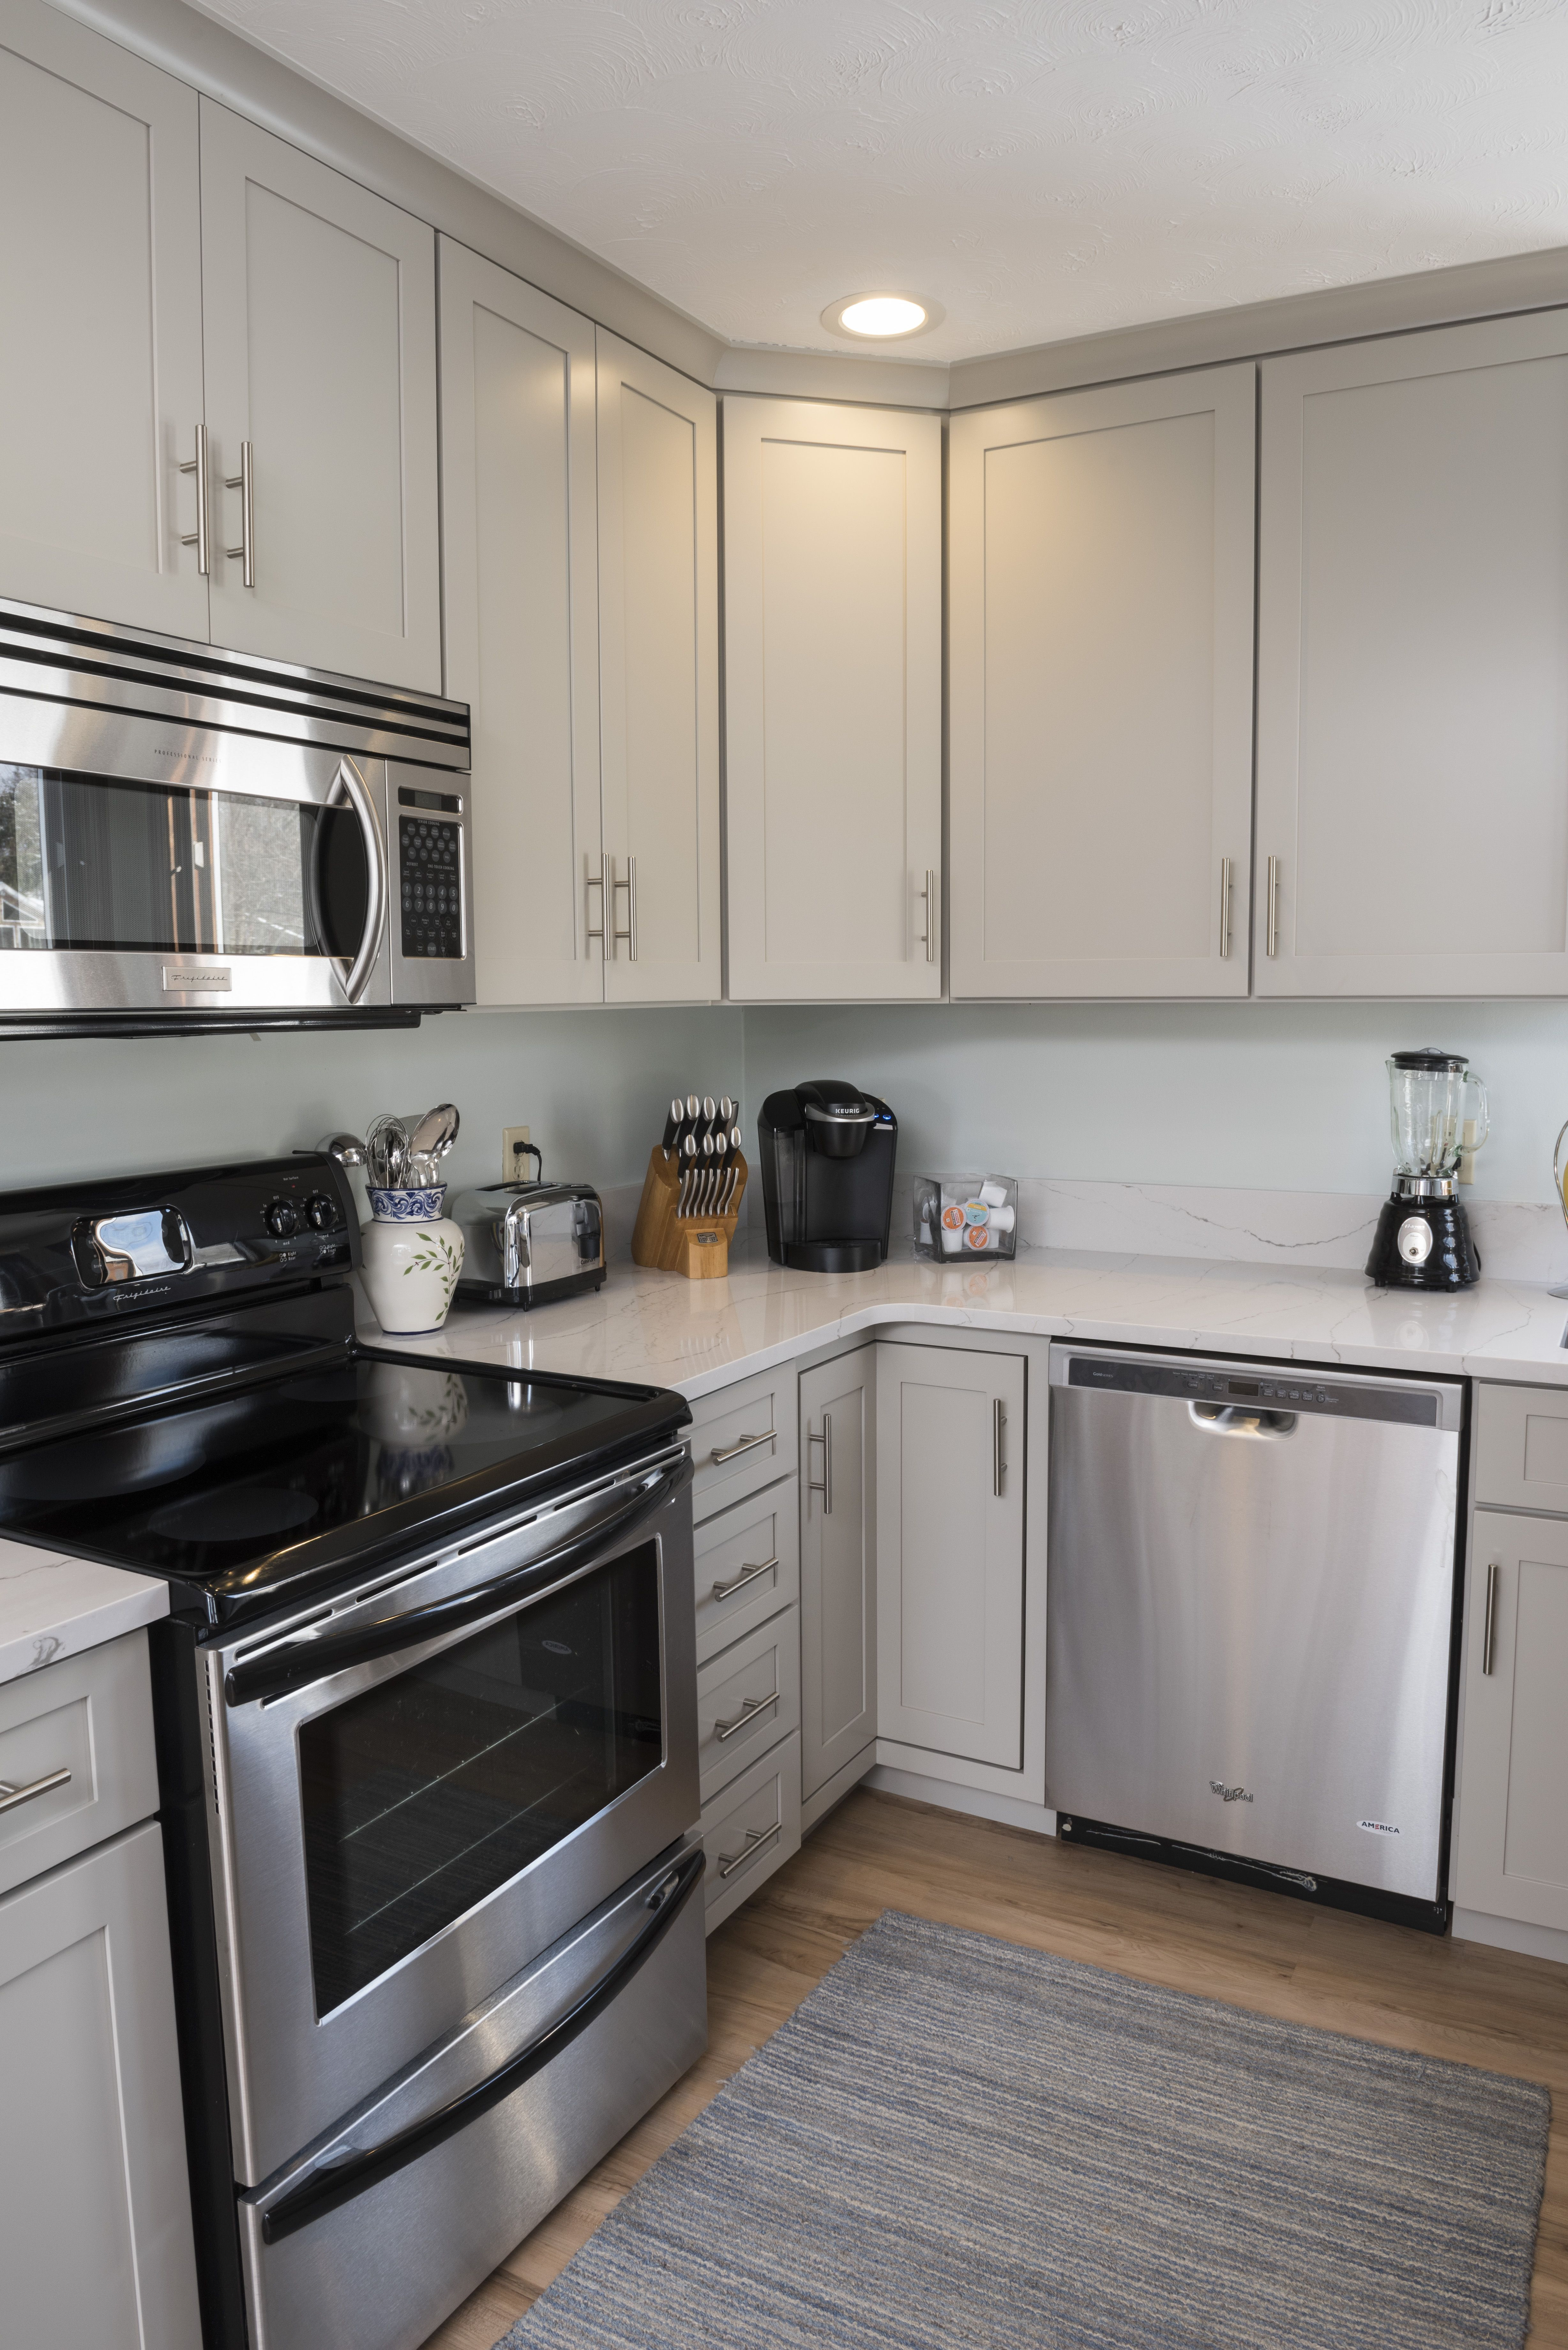 Kitchen Cabinets Custom Built Cabinets Cabinet Companies Custom Cabinetry